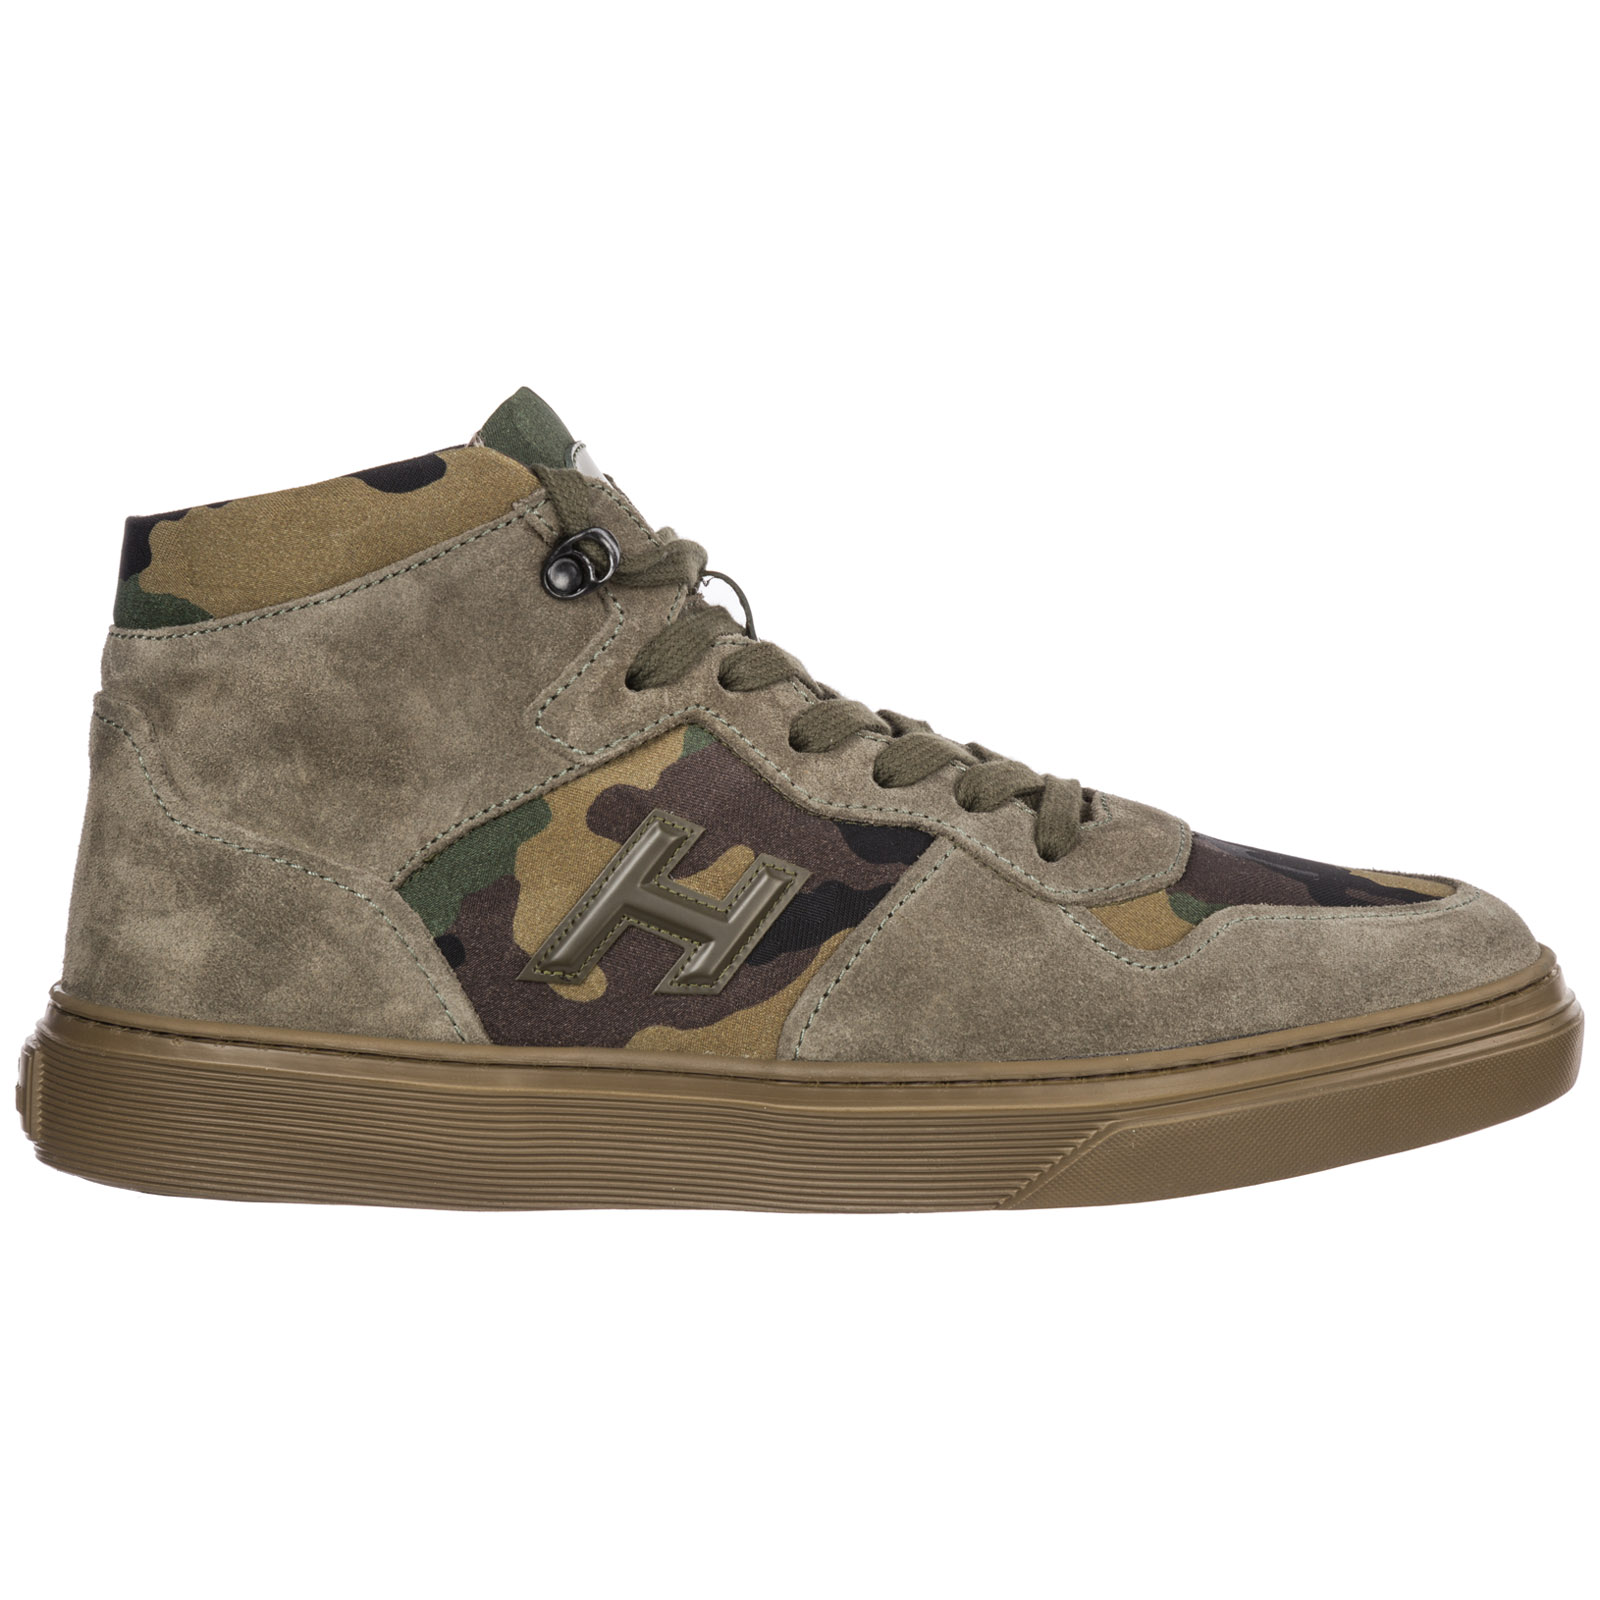 cheap for discount dc3a6 d8bc5 Men's shoes high top suede trainers sneakers h365